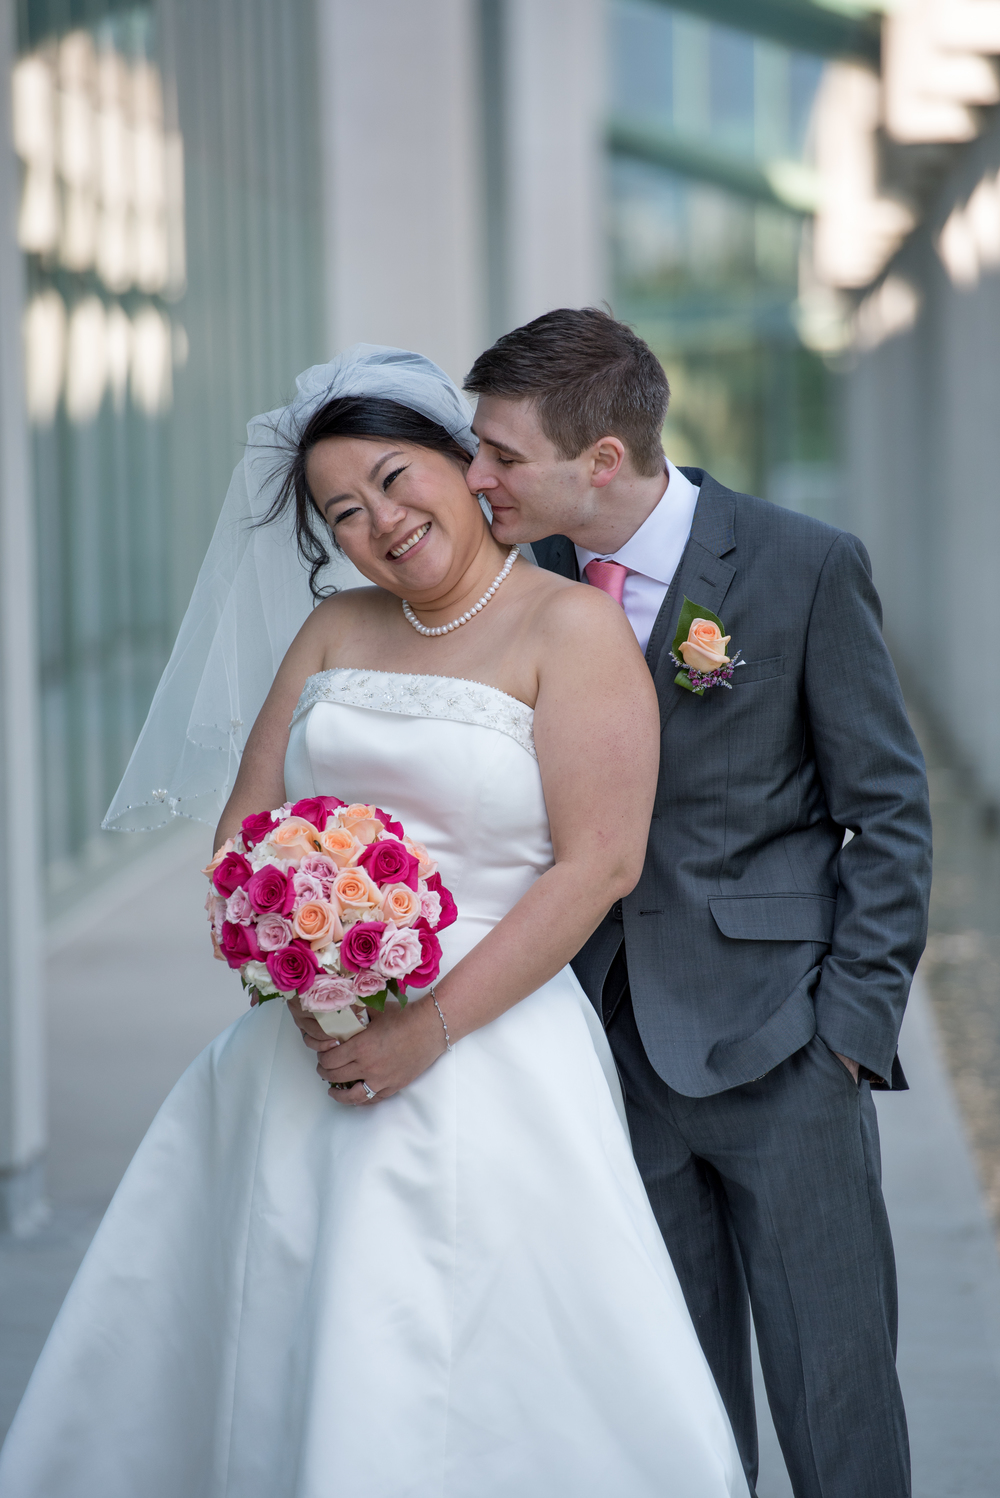 Ling_Steven_Wedding_StephenGroff_Photography